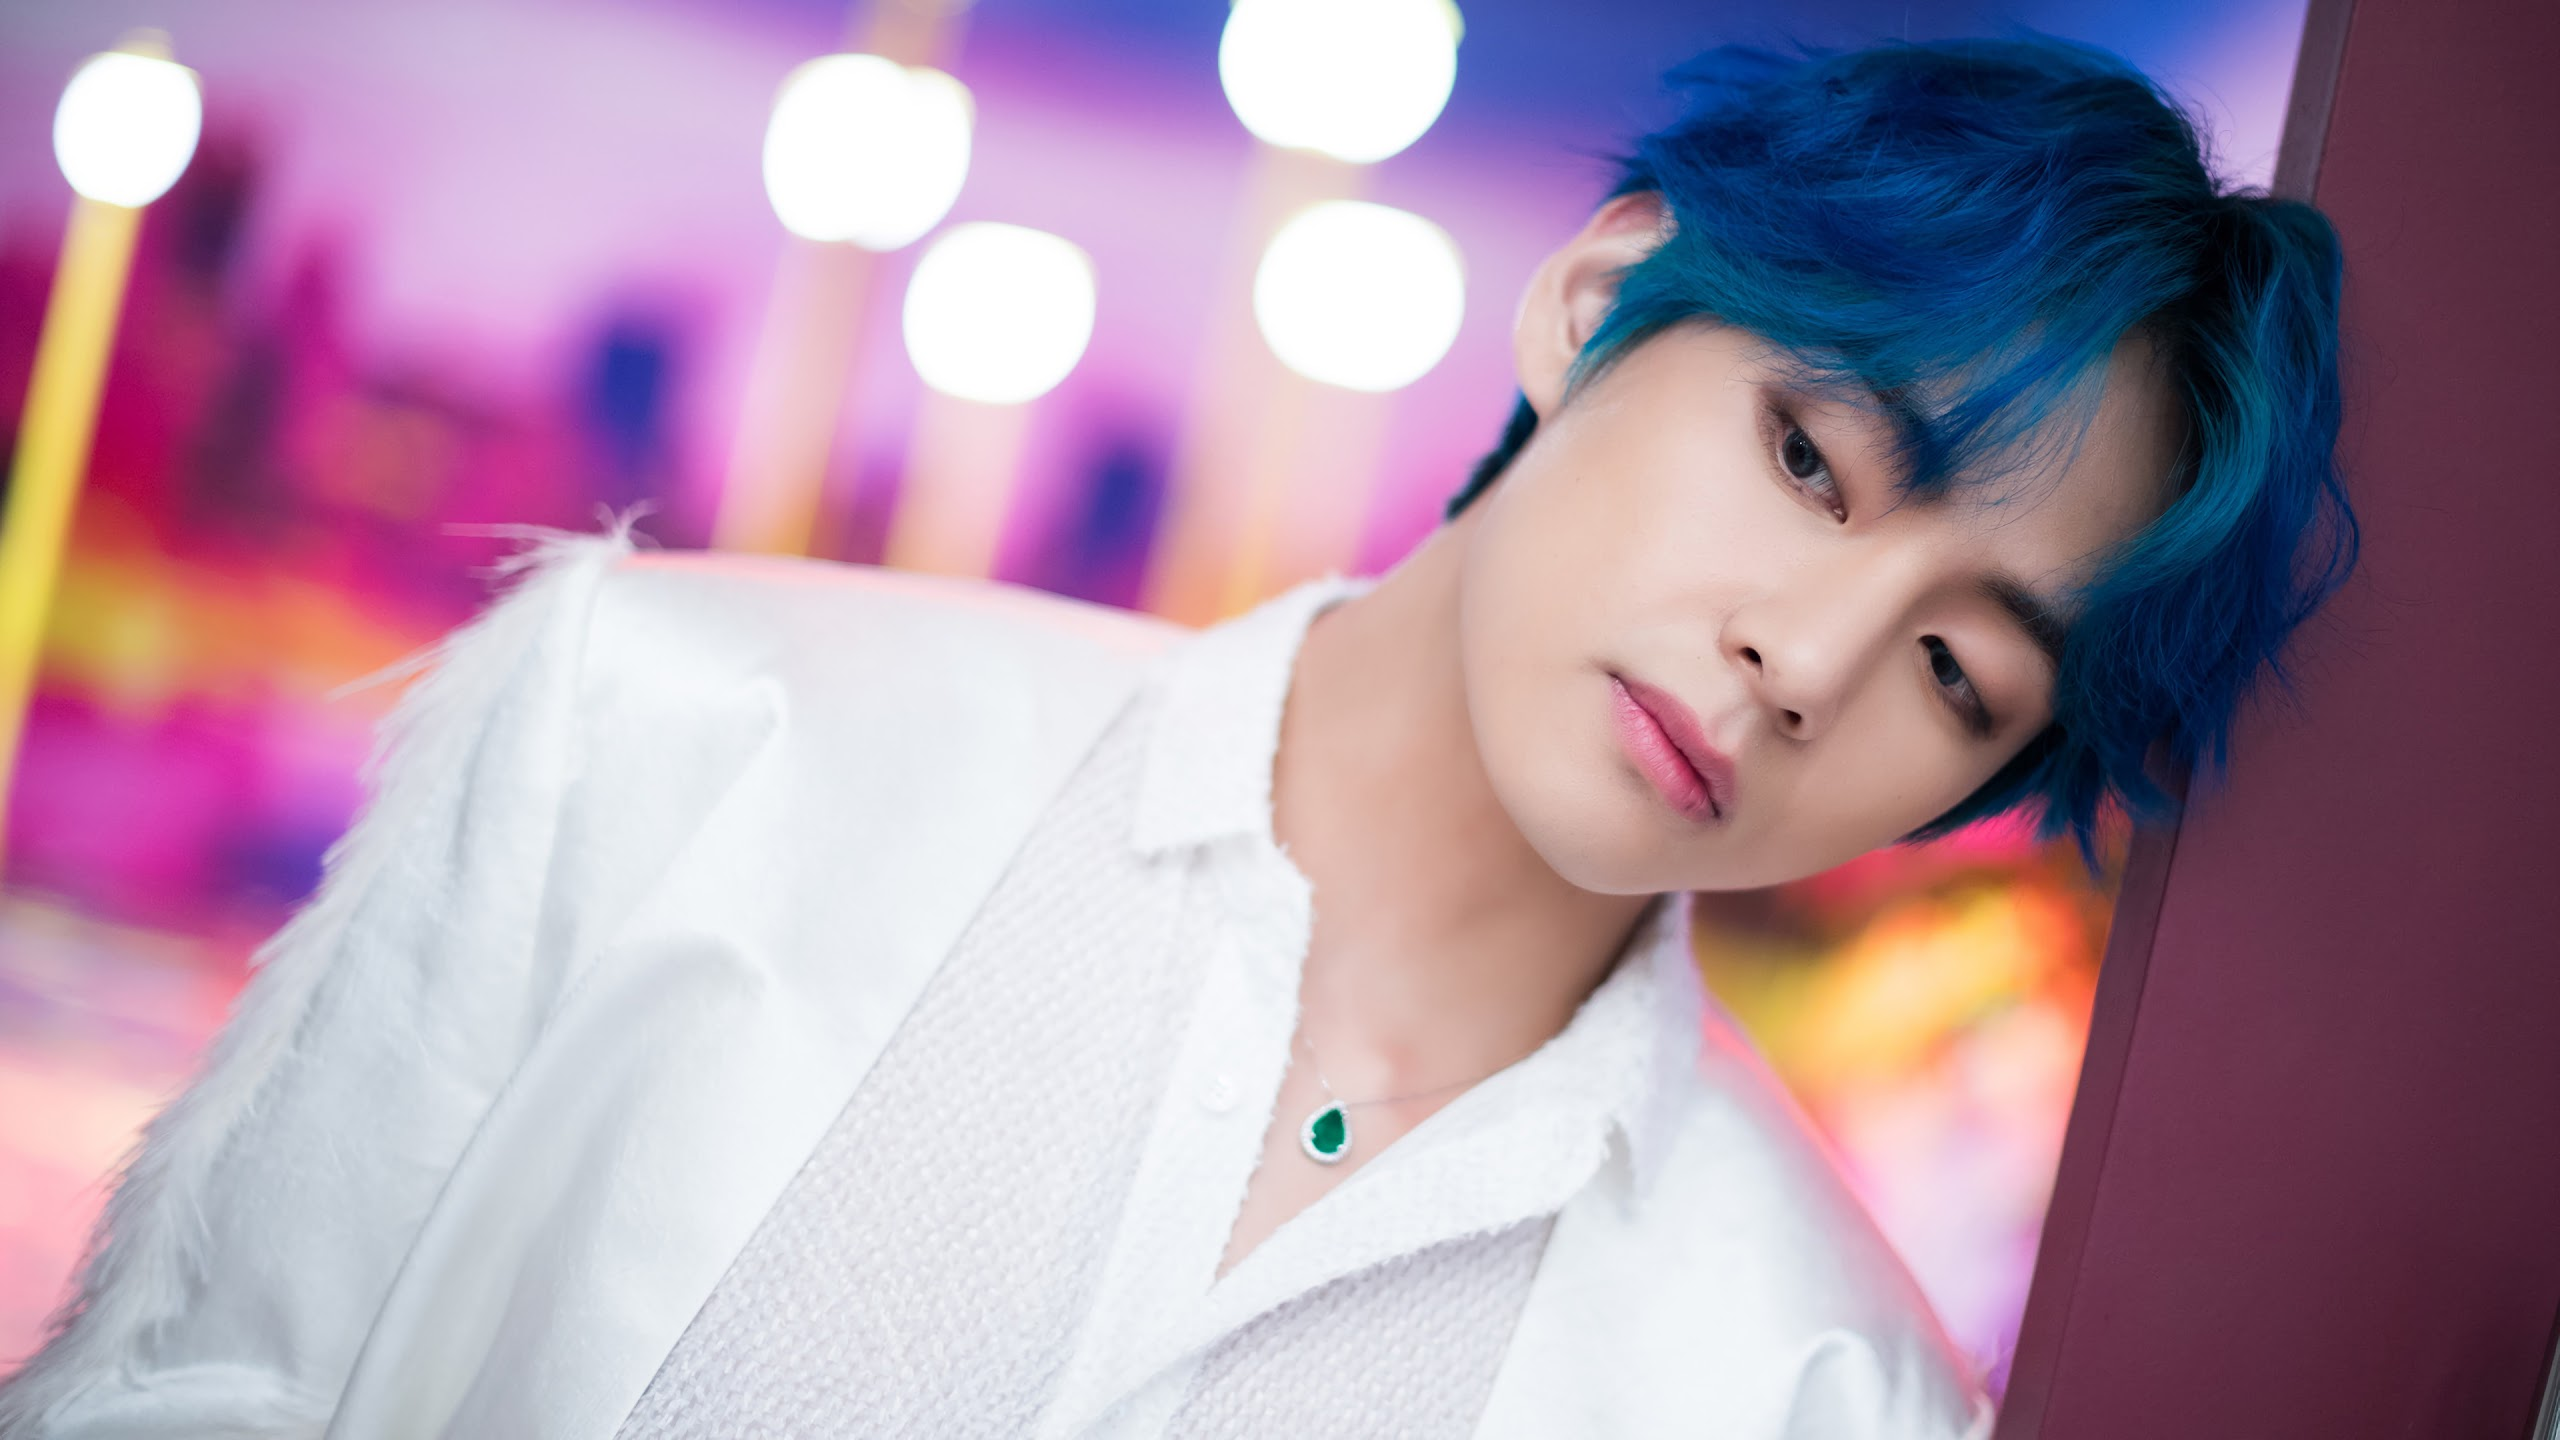 v bts boy with luv uhdpaper.com 4K 95